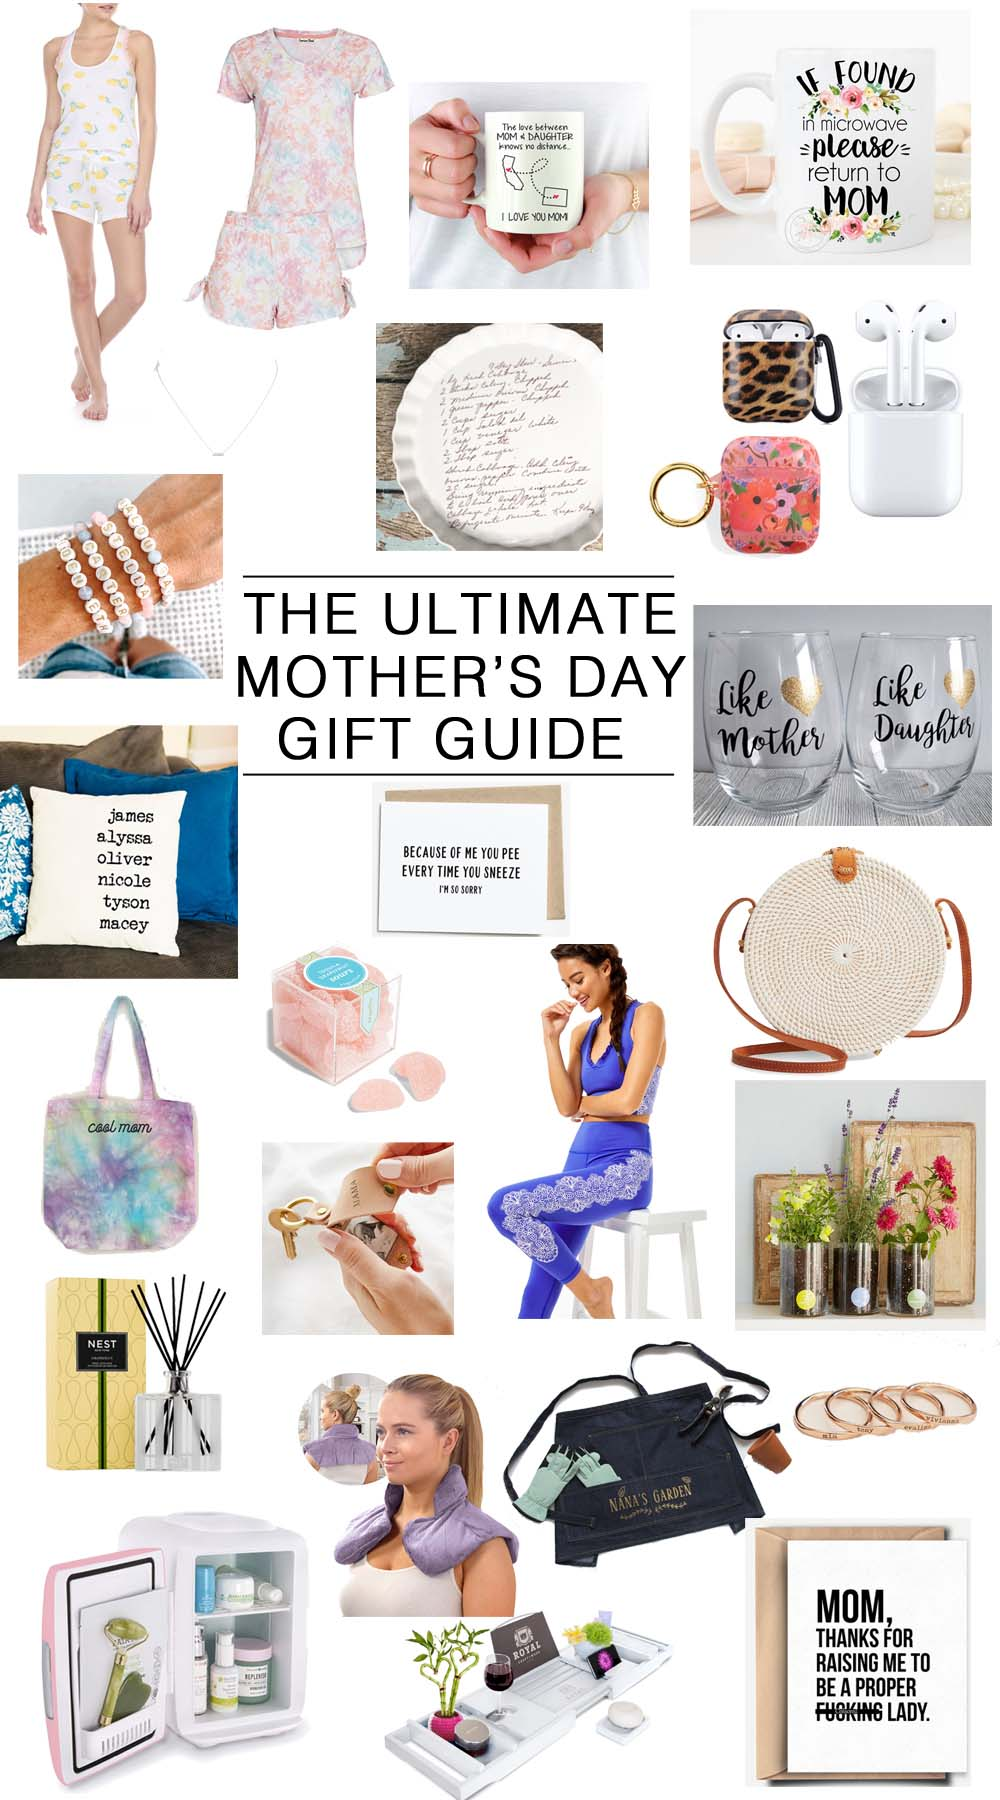 Mother's Day Gift Ideas by popular Florida life and style blog, The Modern Savvy: collage image of airpods, NEST grapefruit diffusers, personalized beaded bracelets, lemon print tank set, tie dye lounge set, Roberta Roller Rabbit, distance mug, if found mug, delicate bar necklace, custom recipe dish,leopard airpod case, floral airpod case, personalized pillow, sugarfina candy, wine glass set, cool mom tote, phot keychain, sports bra, leggins, rattan purse, birth month flower grow kit, neck/back heated wrap, garden apron, personalized rings, beauty and drink fridge, bath tray, and funny mother's day card.